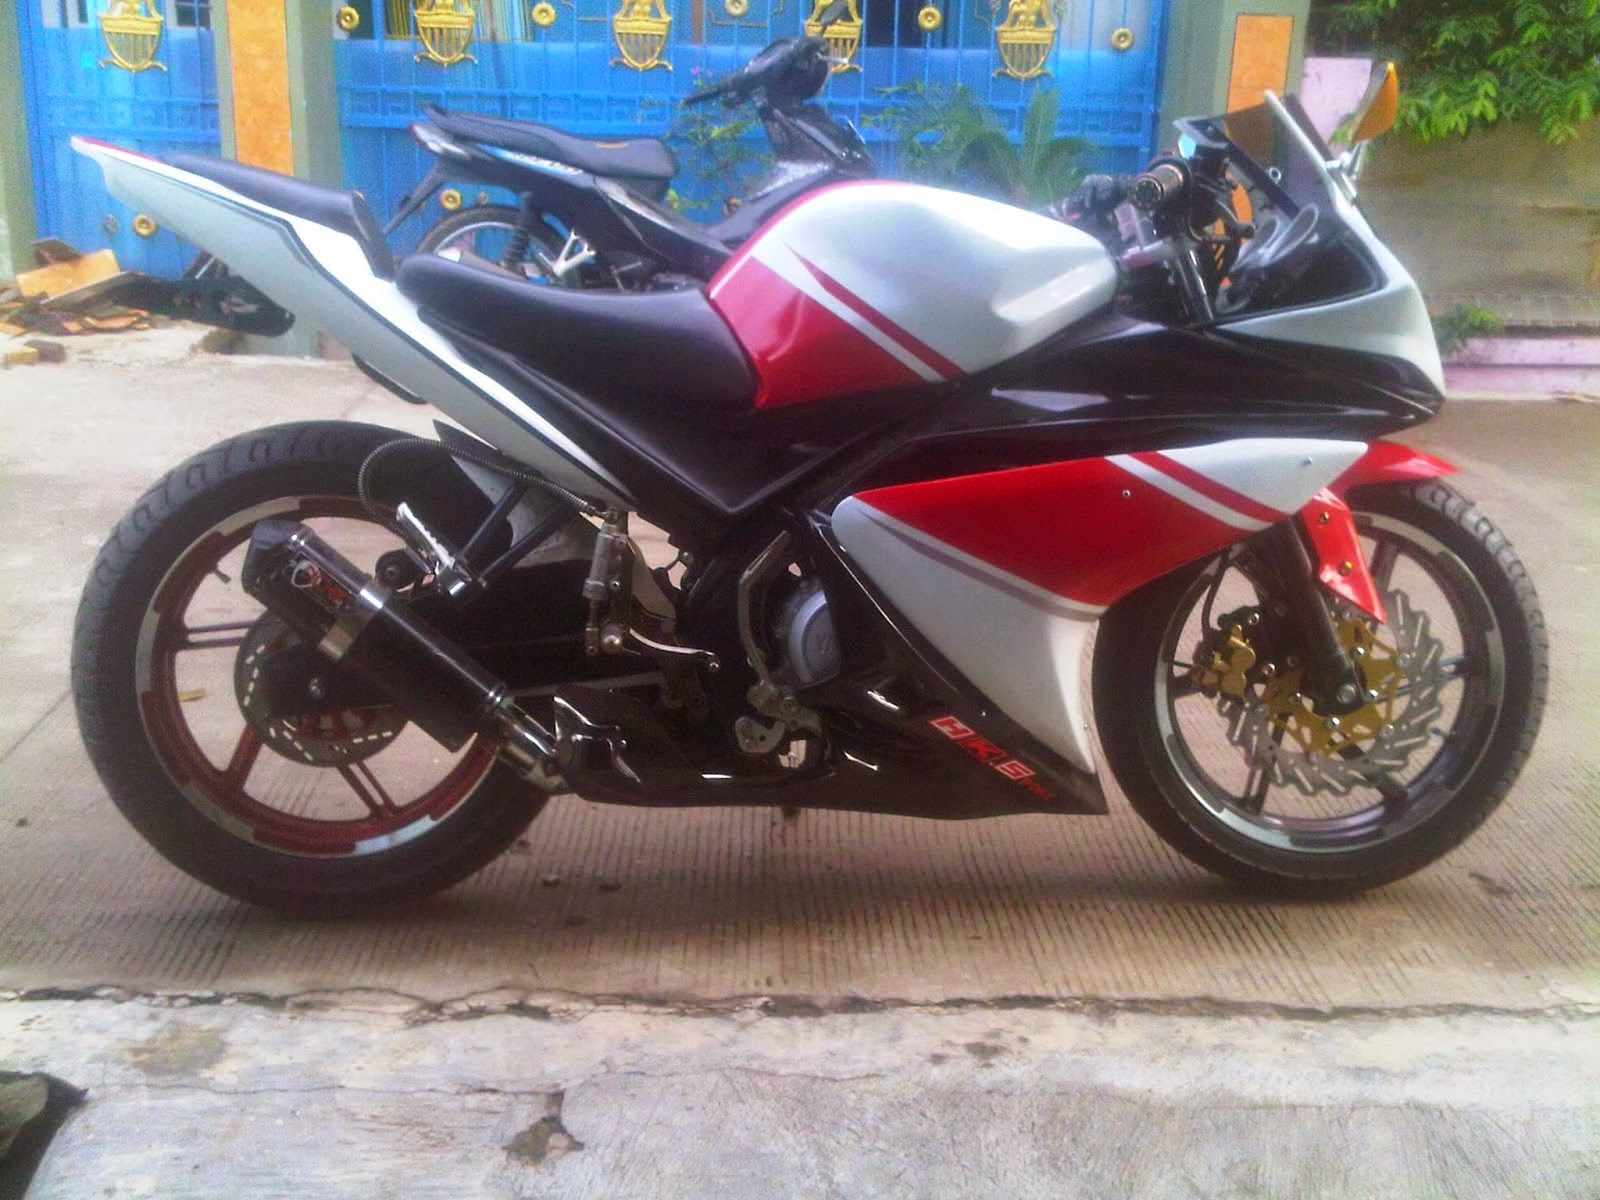 Modifikasi New Vixion Full Fairing R125